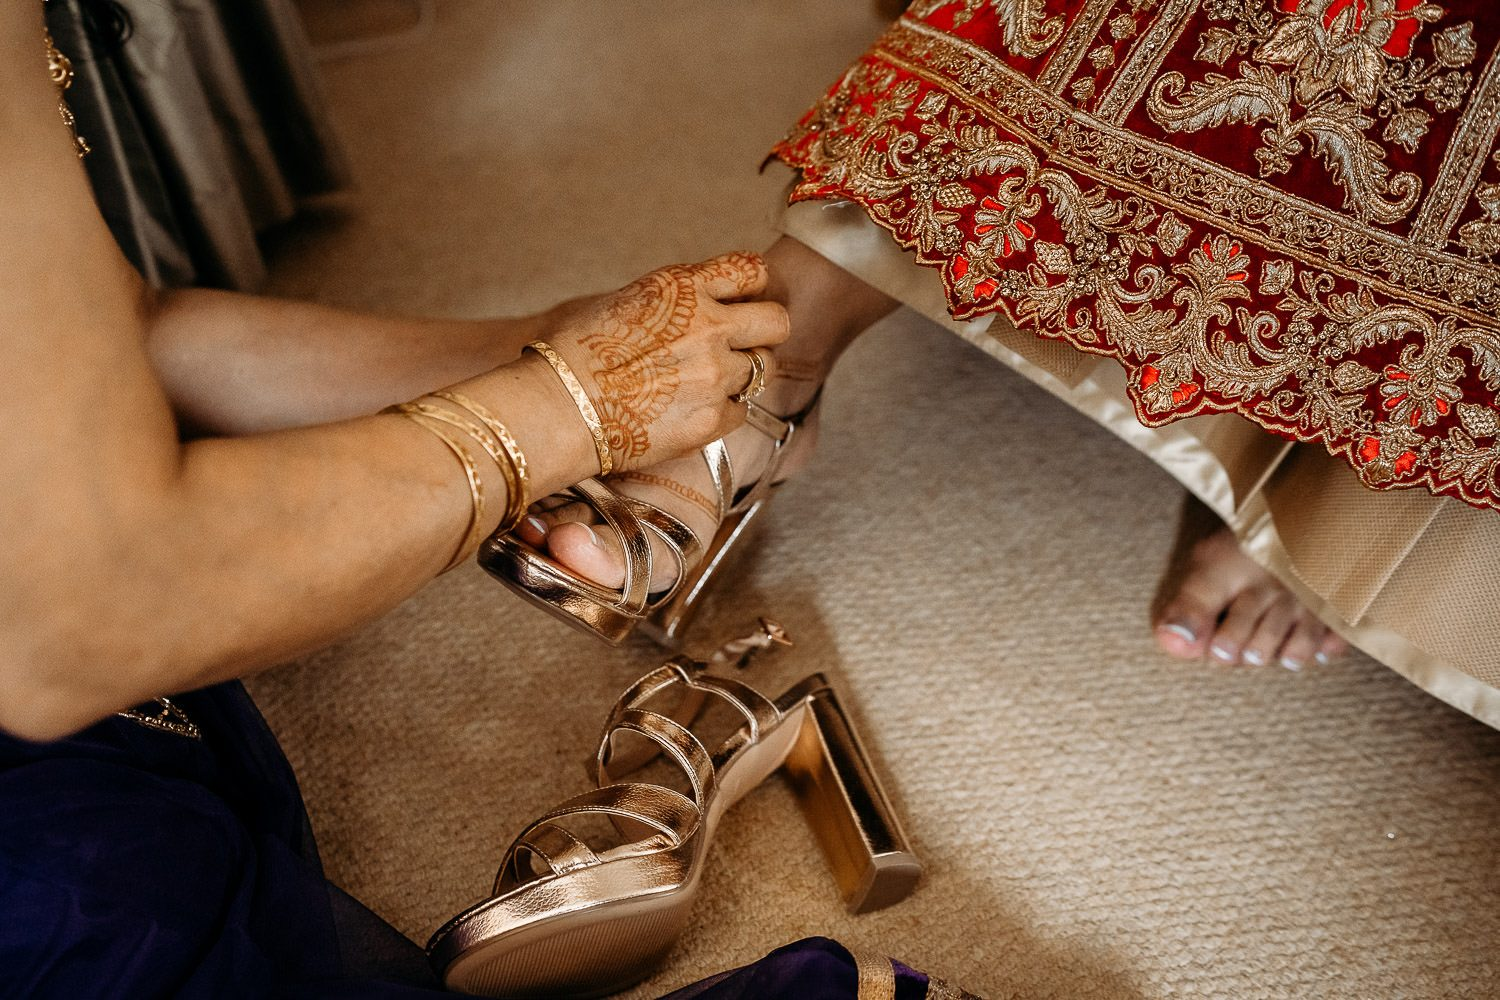 bride in red sari putting on wedding shoes